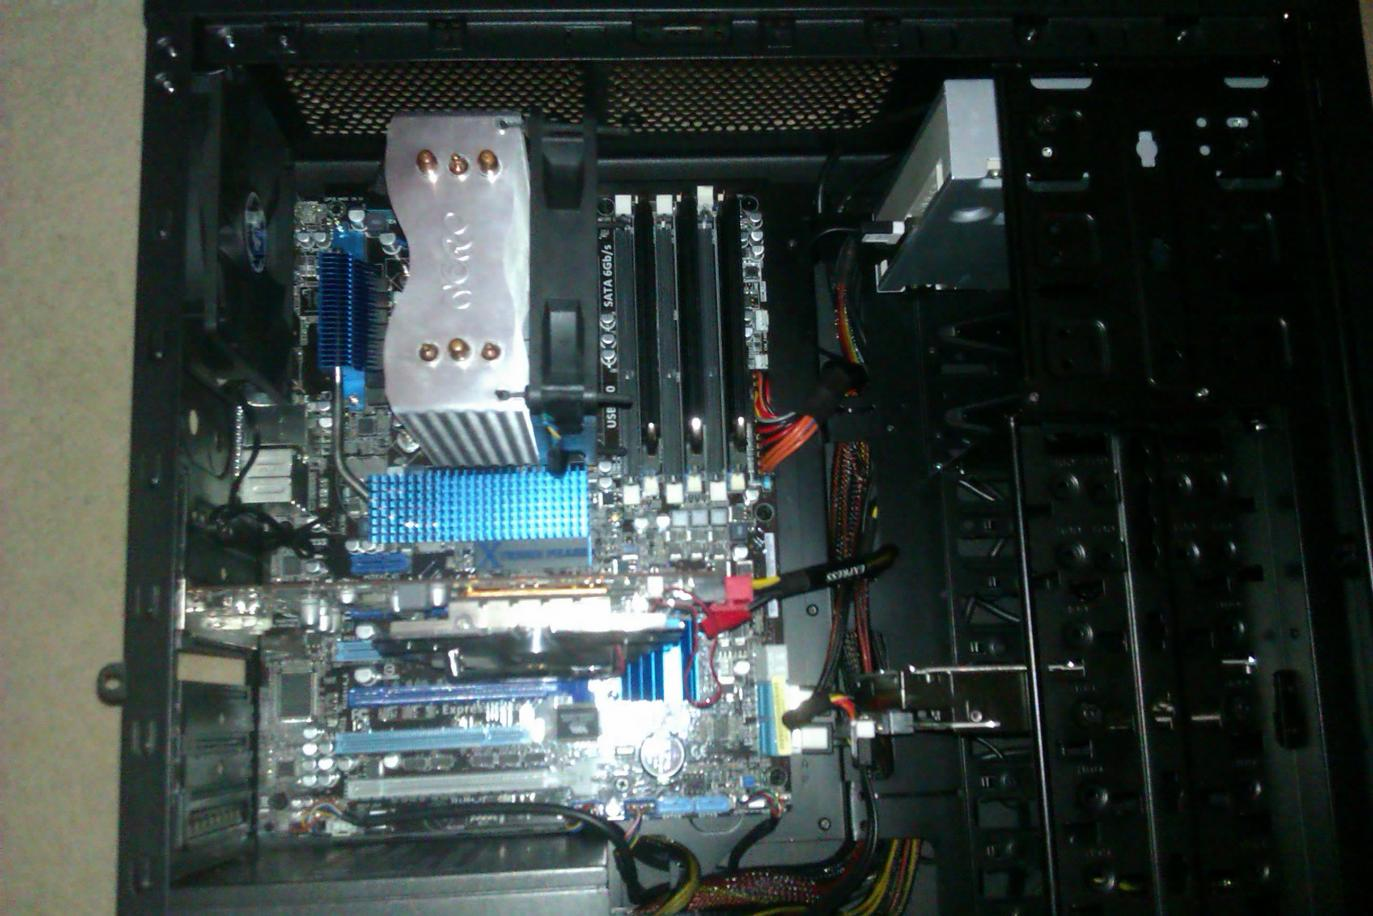 Using ocz reaper tri channel 1800mhz ram